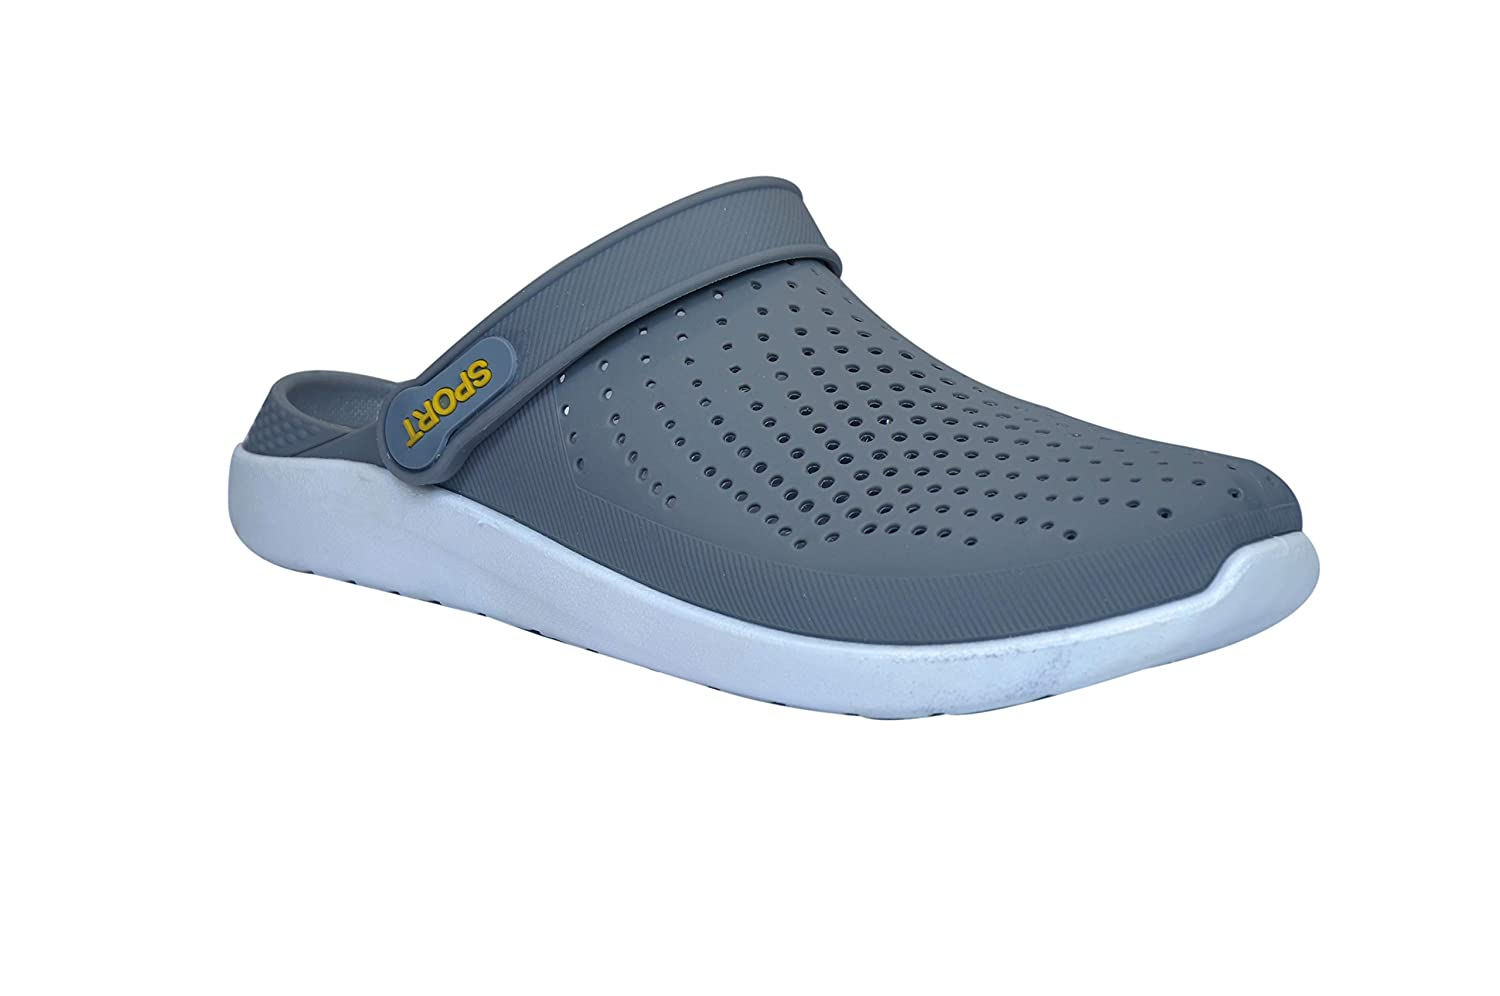 e47cd1ffa17e3f HOCKWOOD Crocs Stylish Comfort Slippers Slide Sandals House Slippers Clogs  and Mules - for Men s and Boy s  Buy Online at Low Prices in India -  Amazon.in